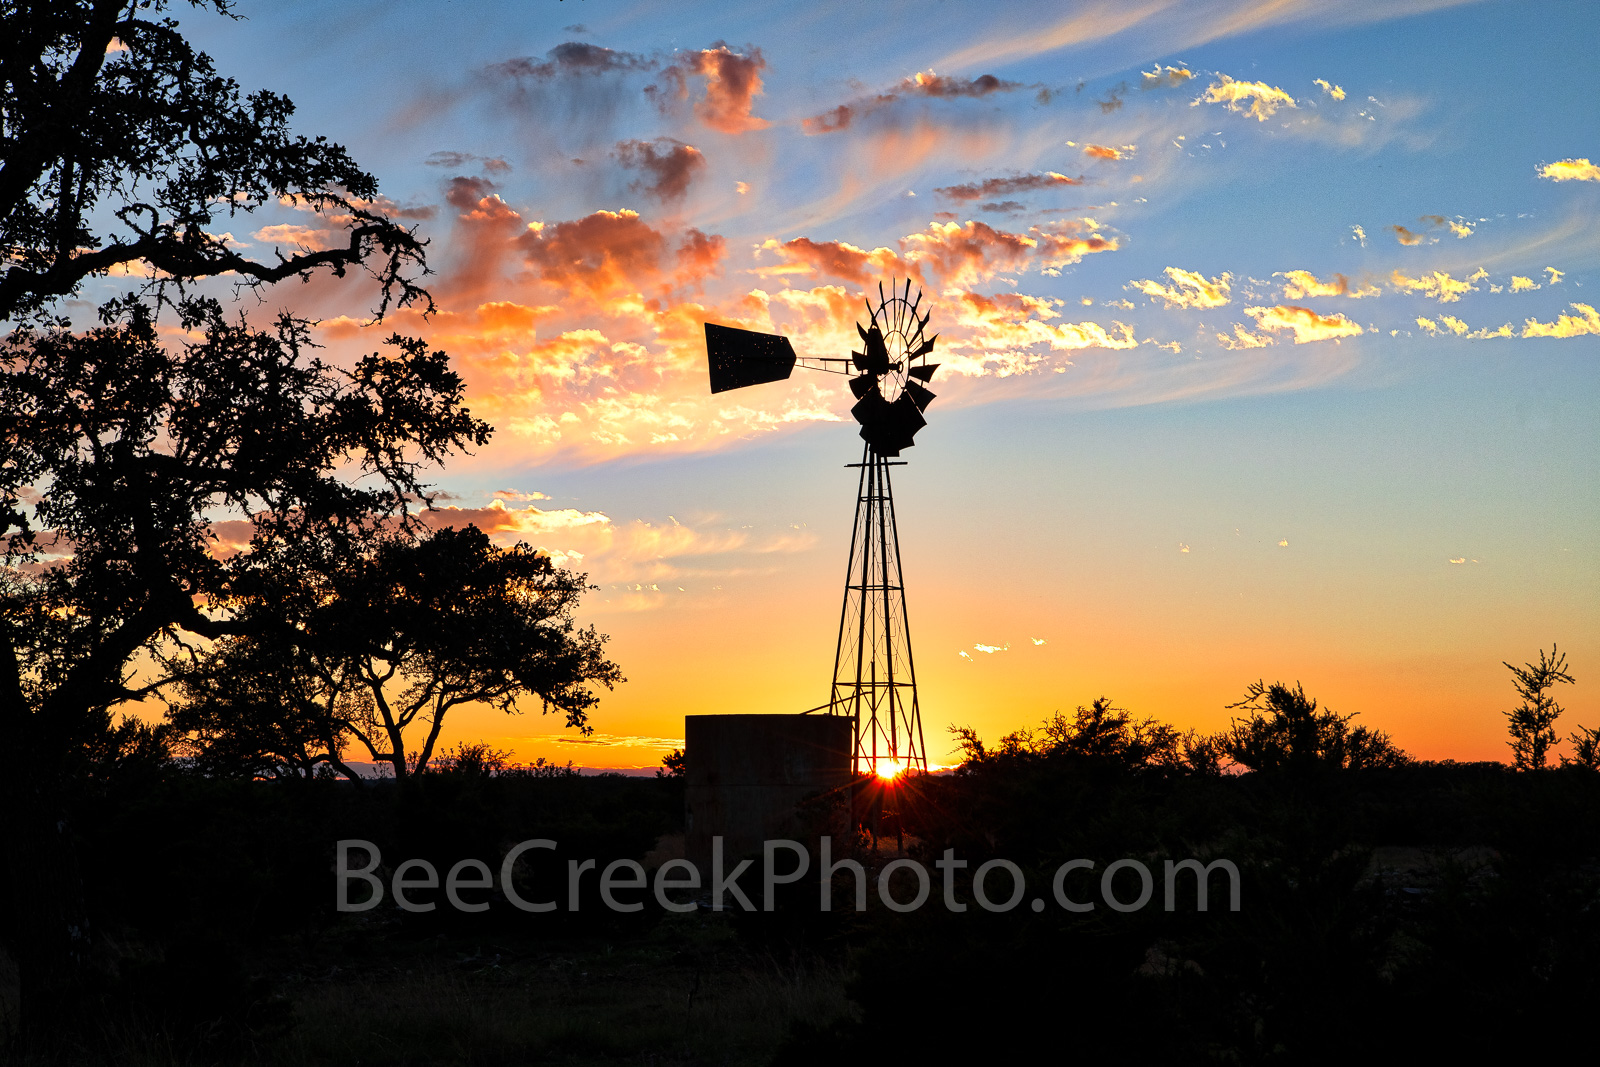 Texas, windmill, sunset, texas hill country, landscape, Texas windmill, silouette, twinkle, horizon, trees, water tank, blades, , photo